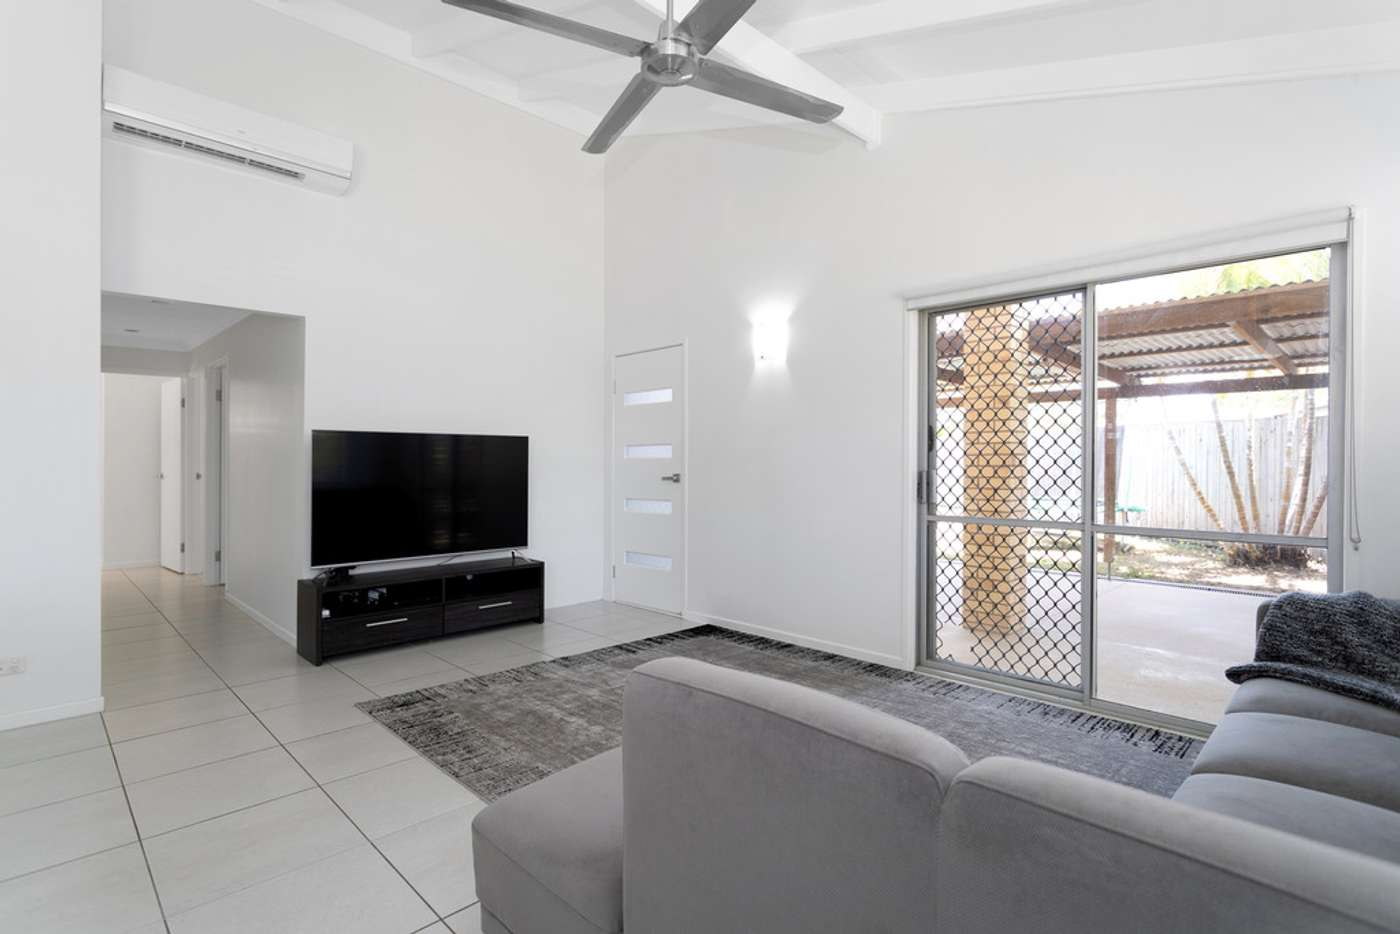 Sixth view of Homely house listing, 2 Mallett Court, Beaconsfield QLD 4740